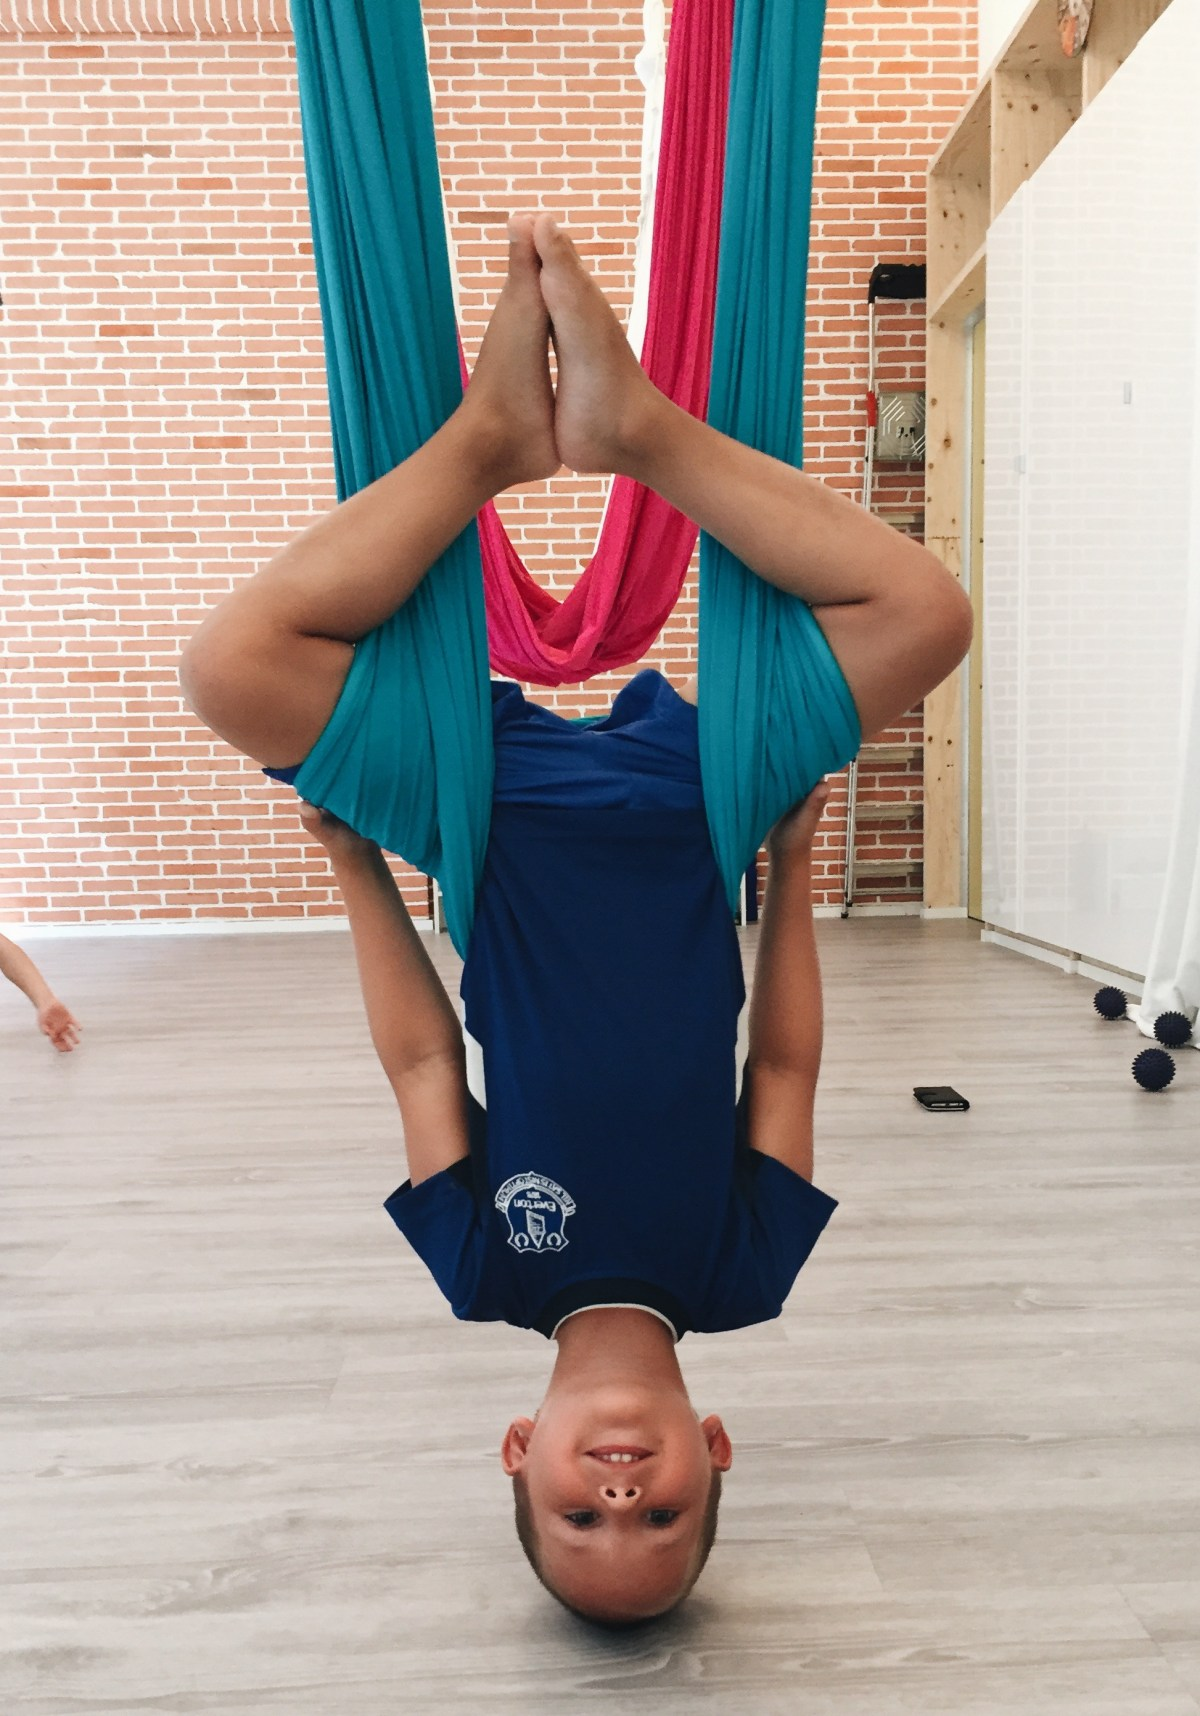 yoga aerien suisse blog maman lifestyle sport famille thereseandthekids